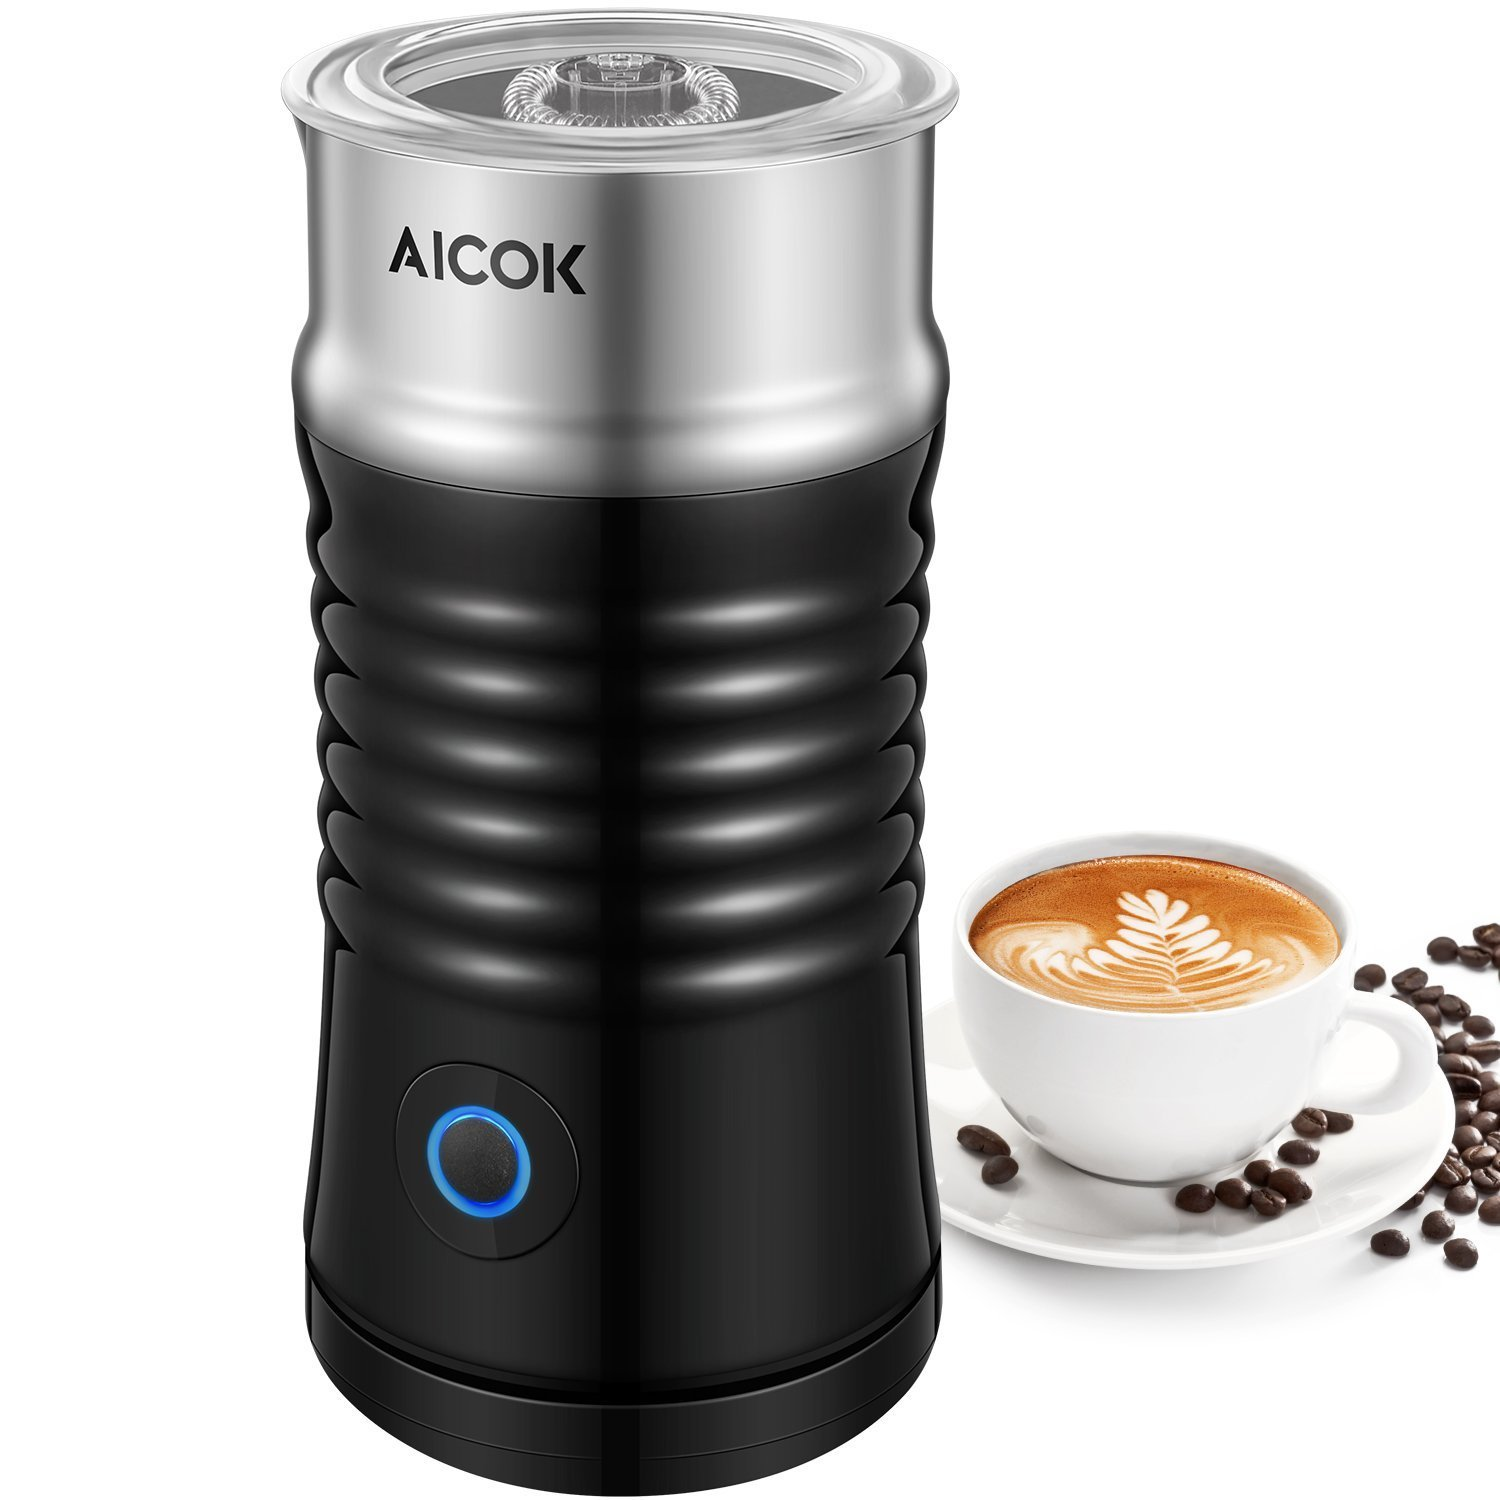 Aicok Electric Milk Frother Double Wall Milk Steamer Heater and Foamer for Coffee, Latte, Cappuccino, Mousseur